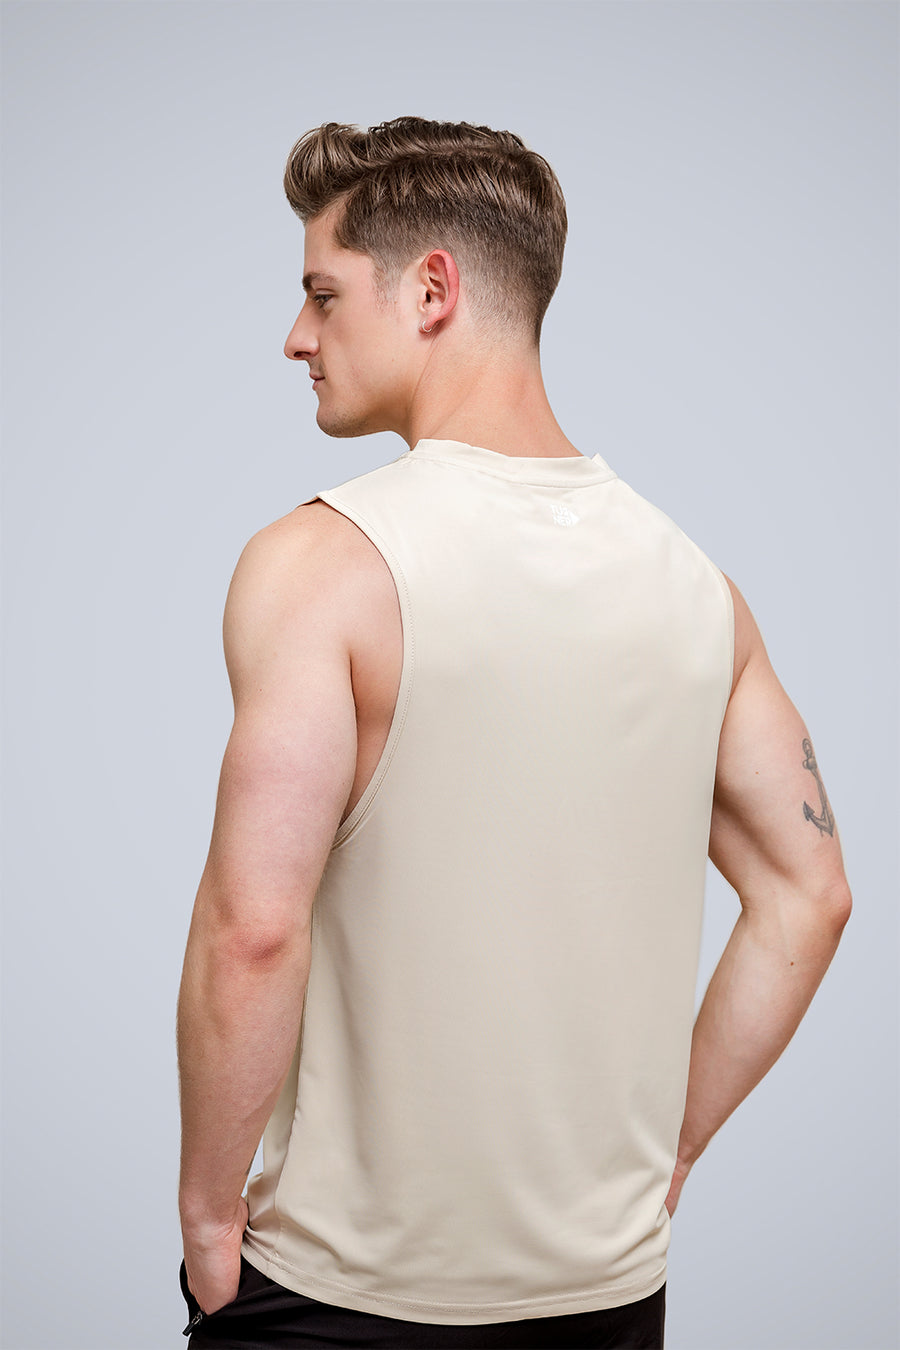 Men's FreedomFit Tan Basic Tank